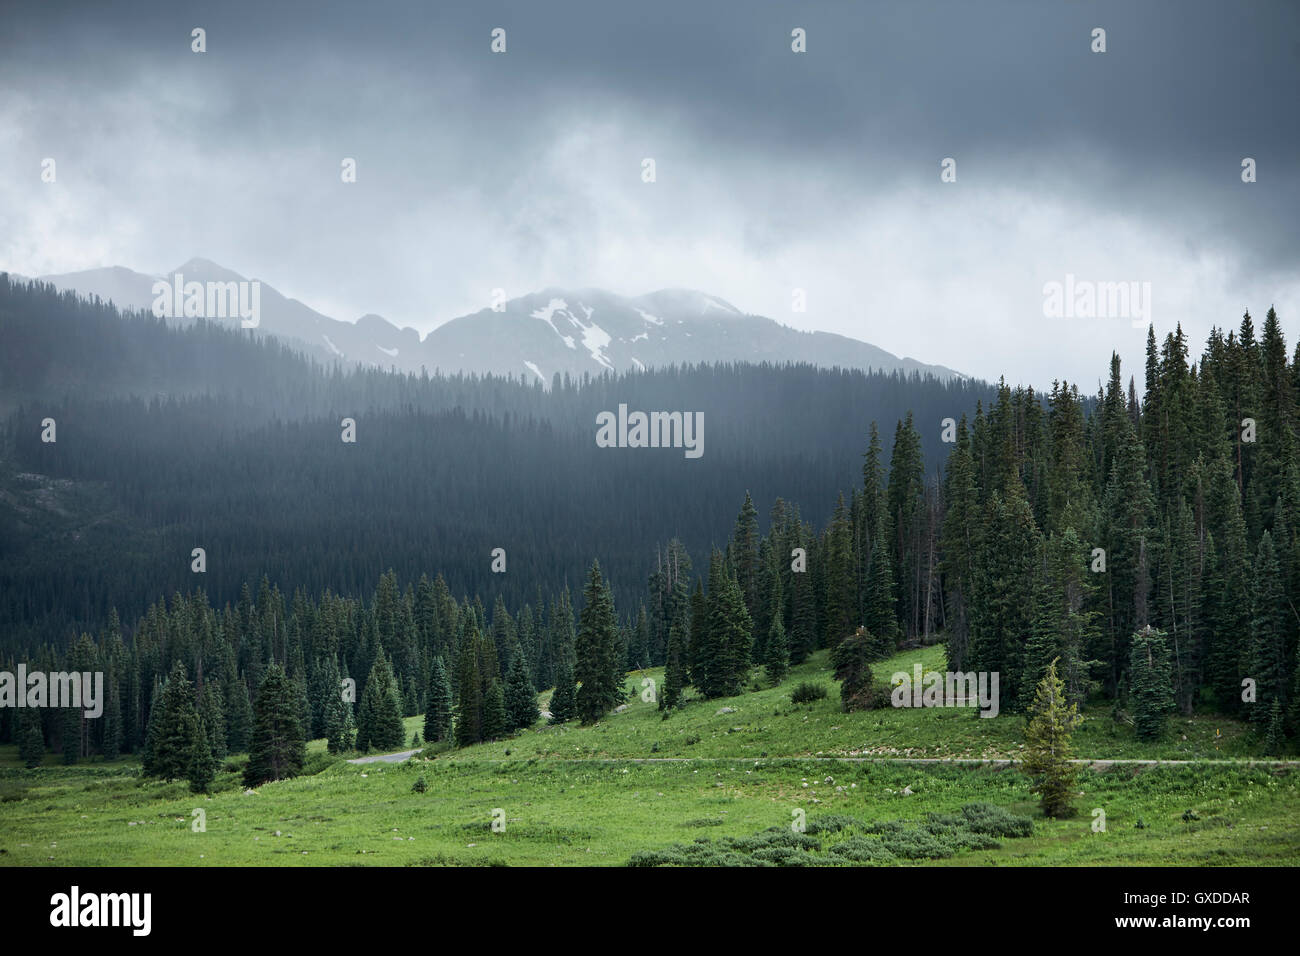 Storm clouds over mountain landscape, Crested Butte, Colorado, USA - Stock Image